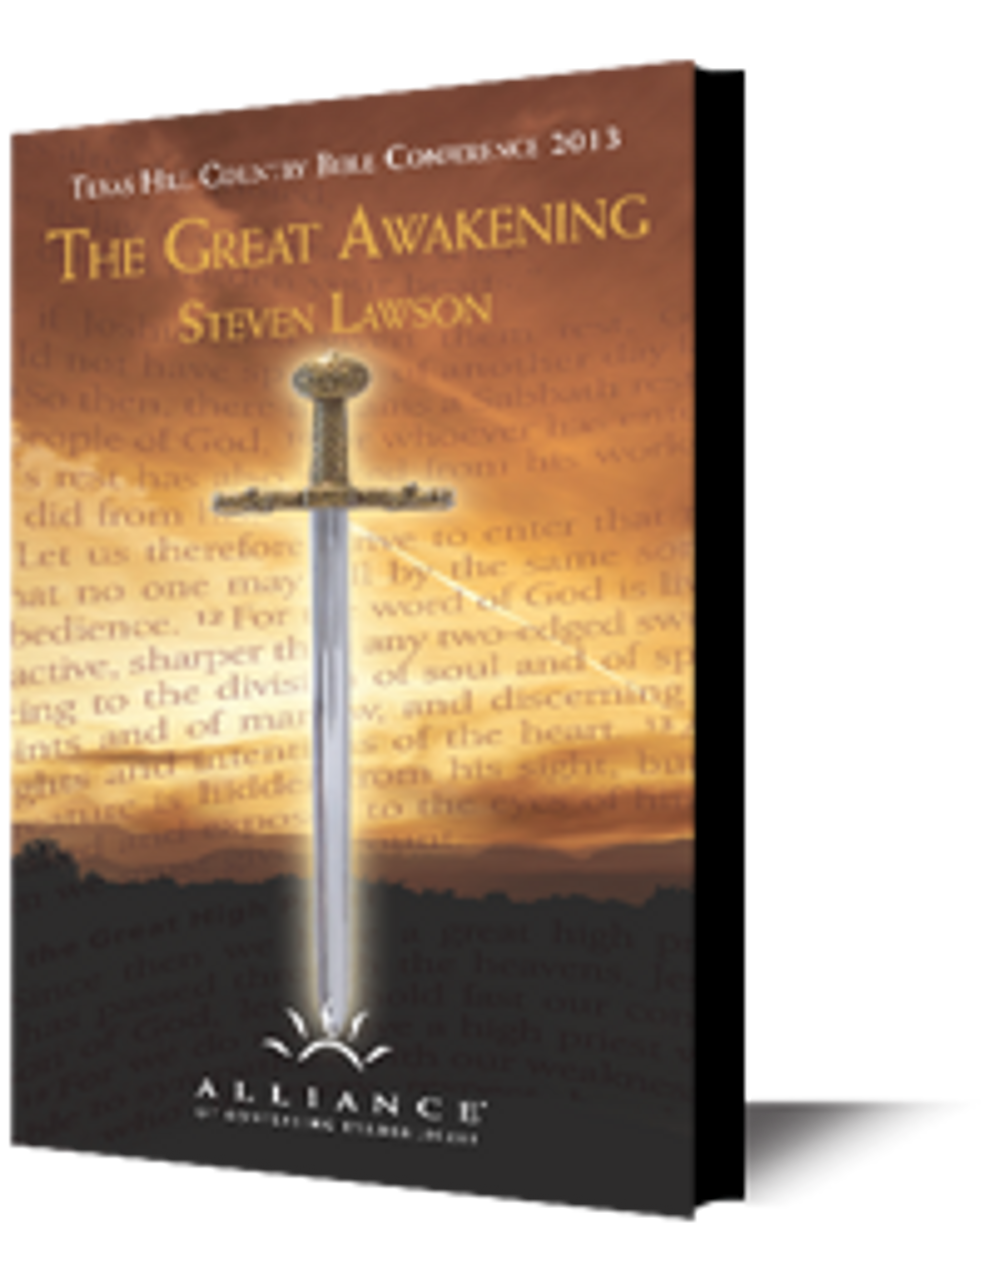 The Great Awakening (CD Set)